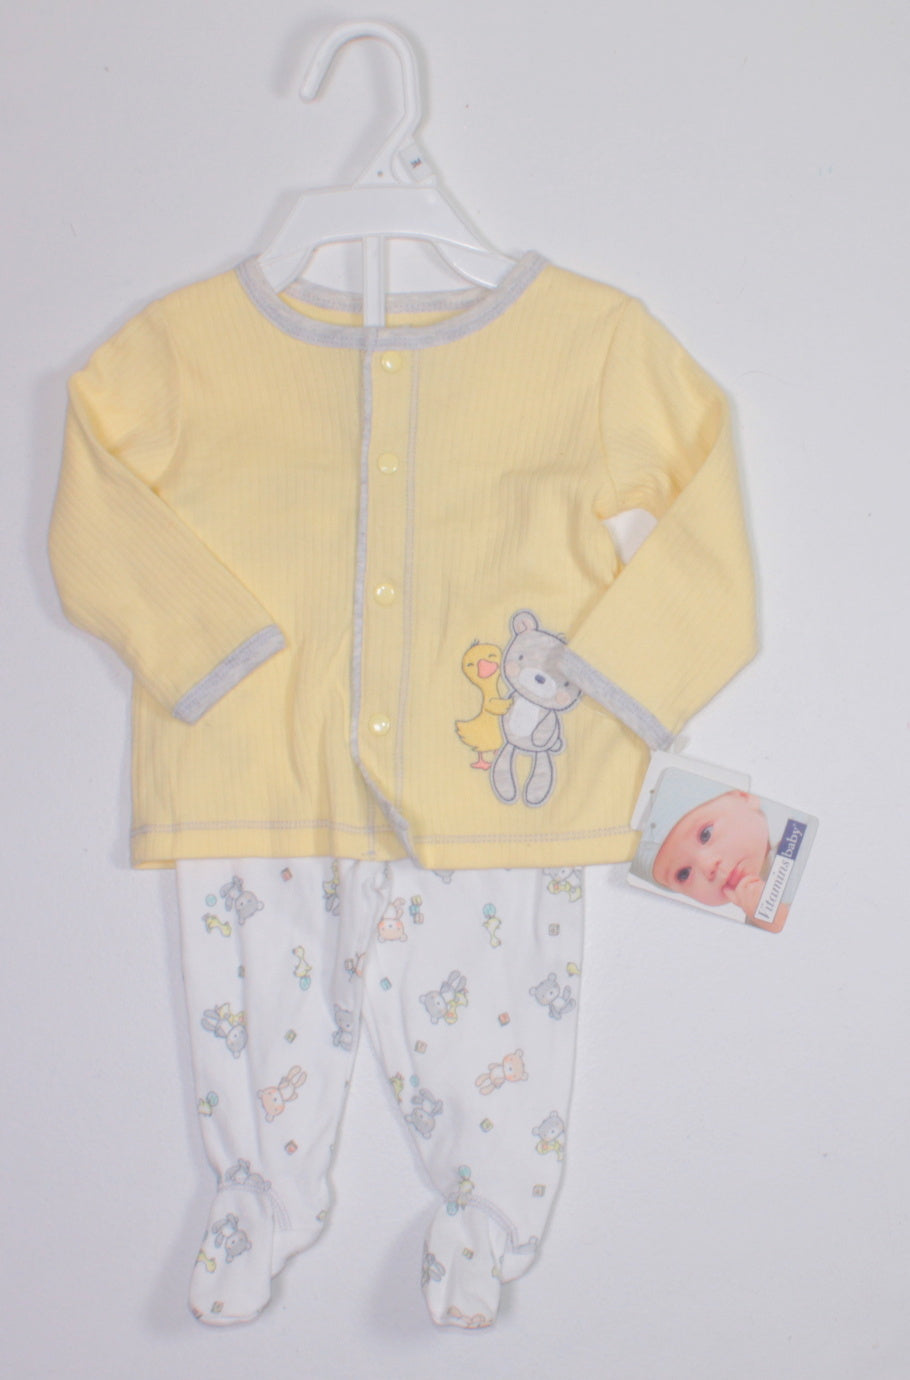 VITAMINS BABY BEAR OUTFIT 3M NEW!